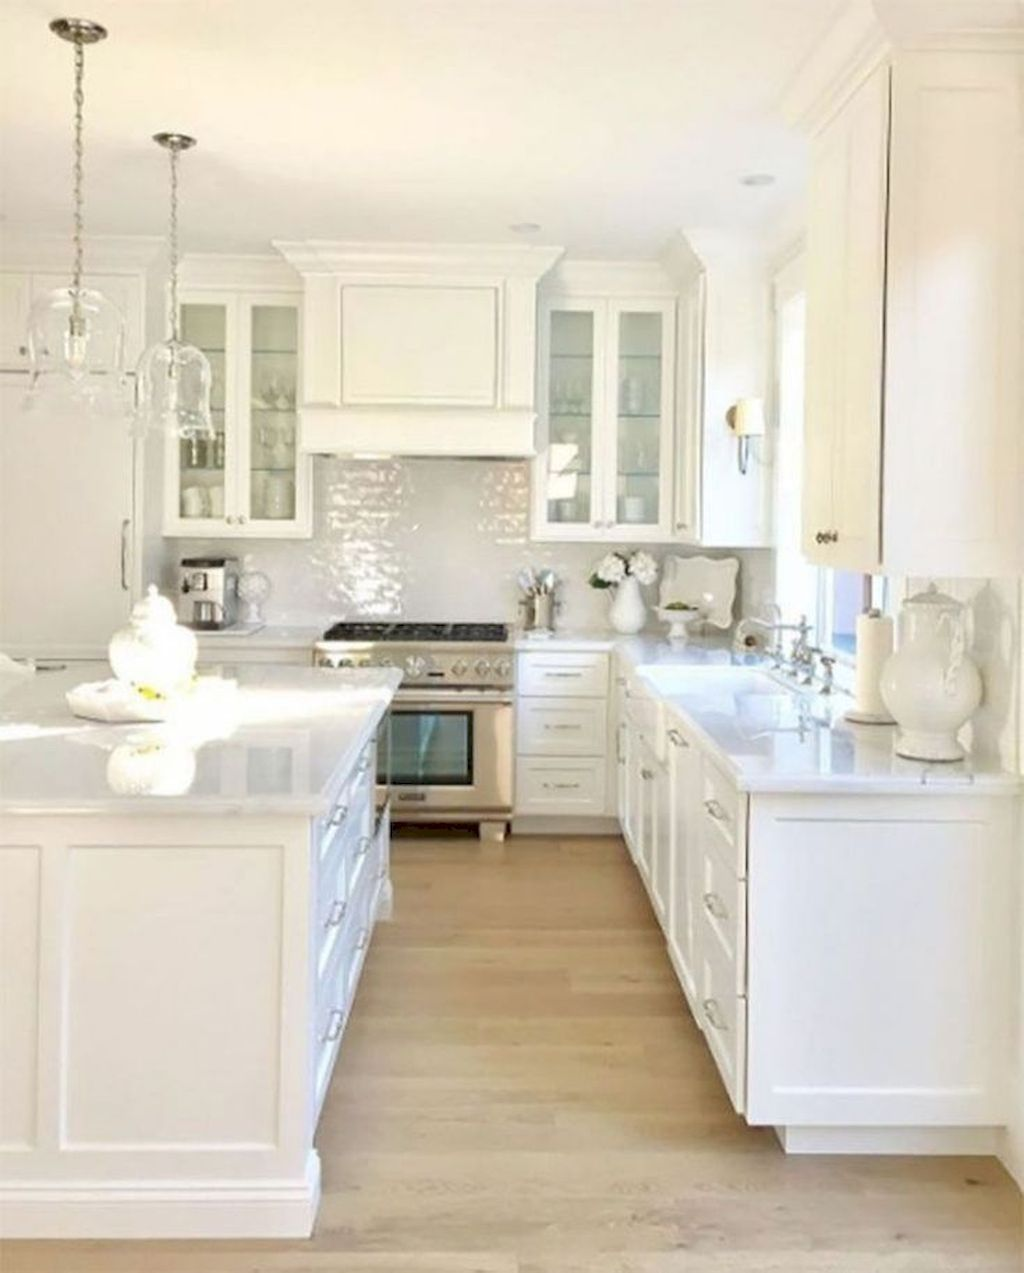 White Kitchen Ideas From The Devices To The Closets We Ve Damaged Down 28 Various White Kitc White Kitchen Design Kitchen Cabinet Design Kitchen Renovation